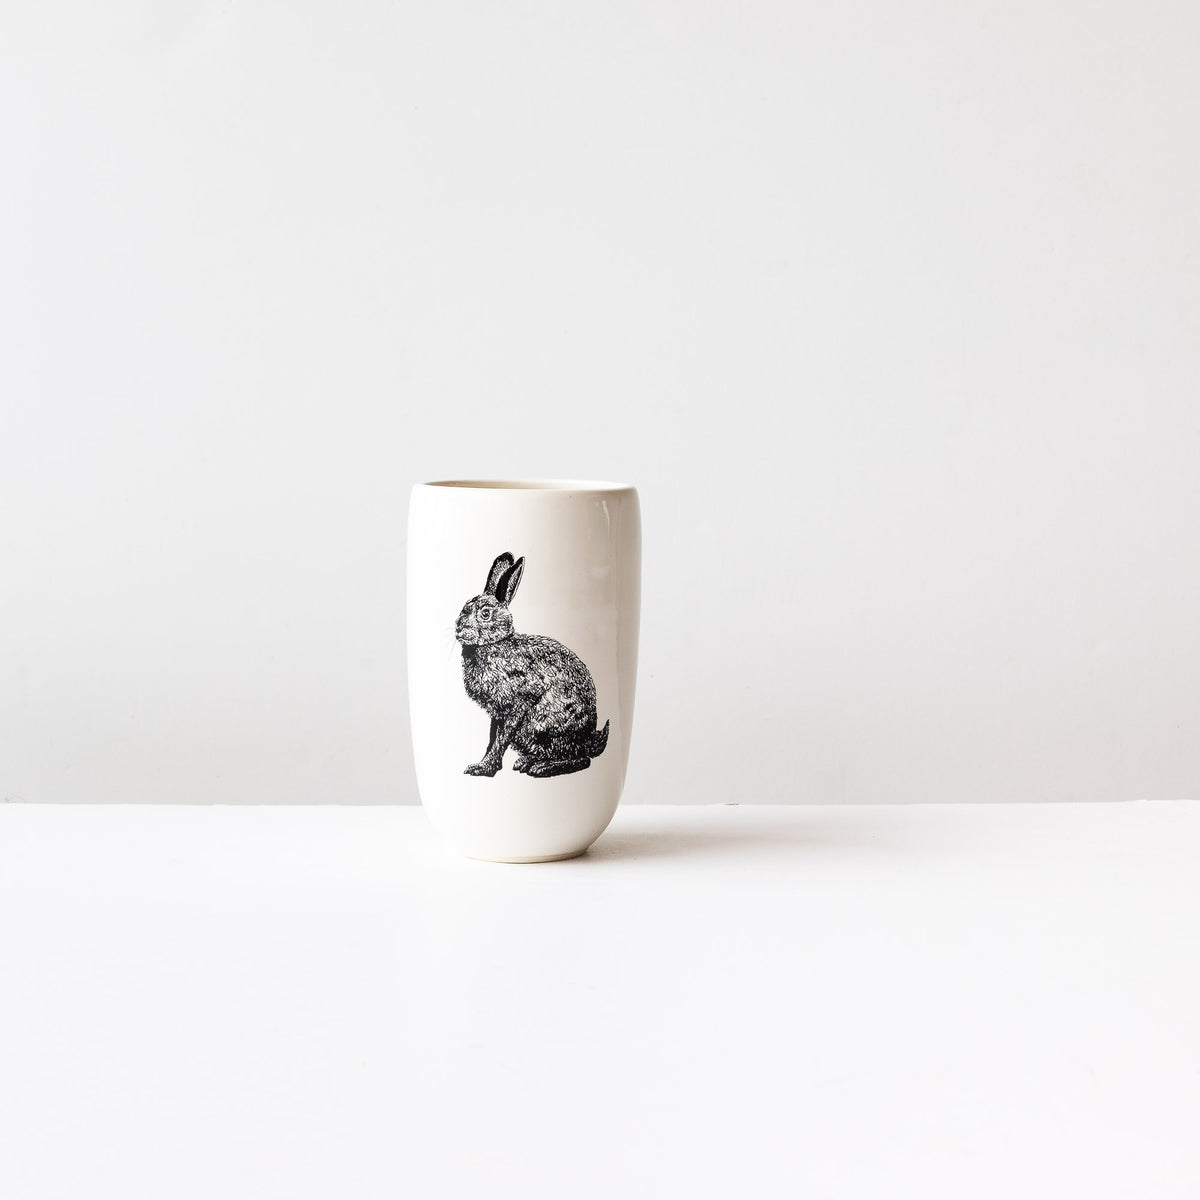 Hare - Handmade Porcelain Beer Tumbler / Glass - Sold by Chic & Basta